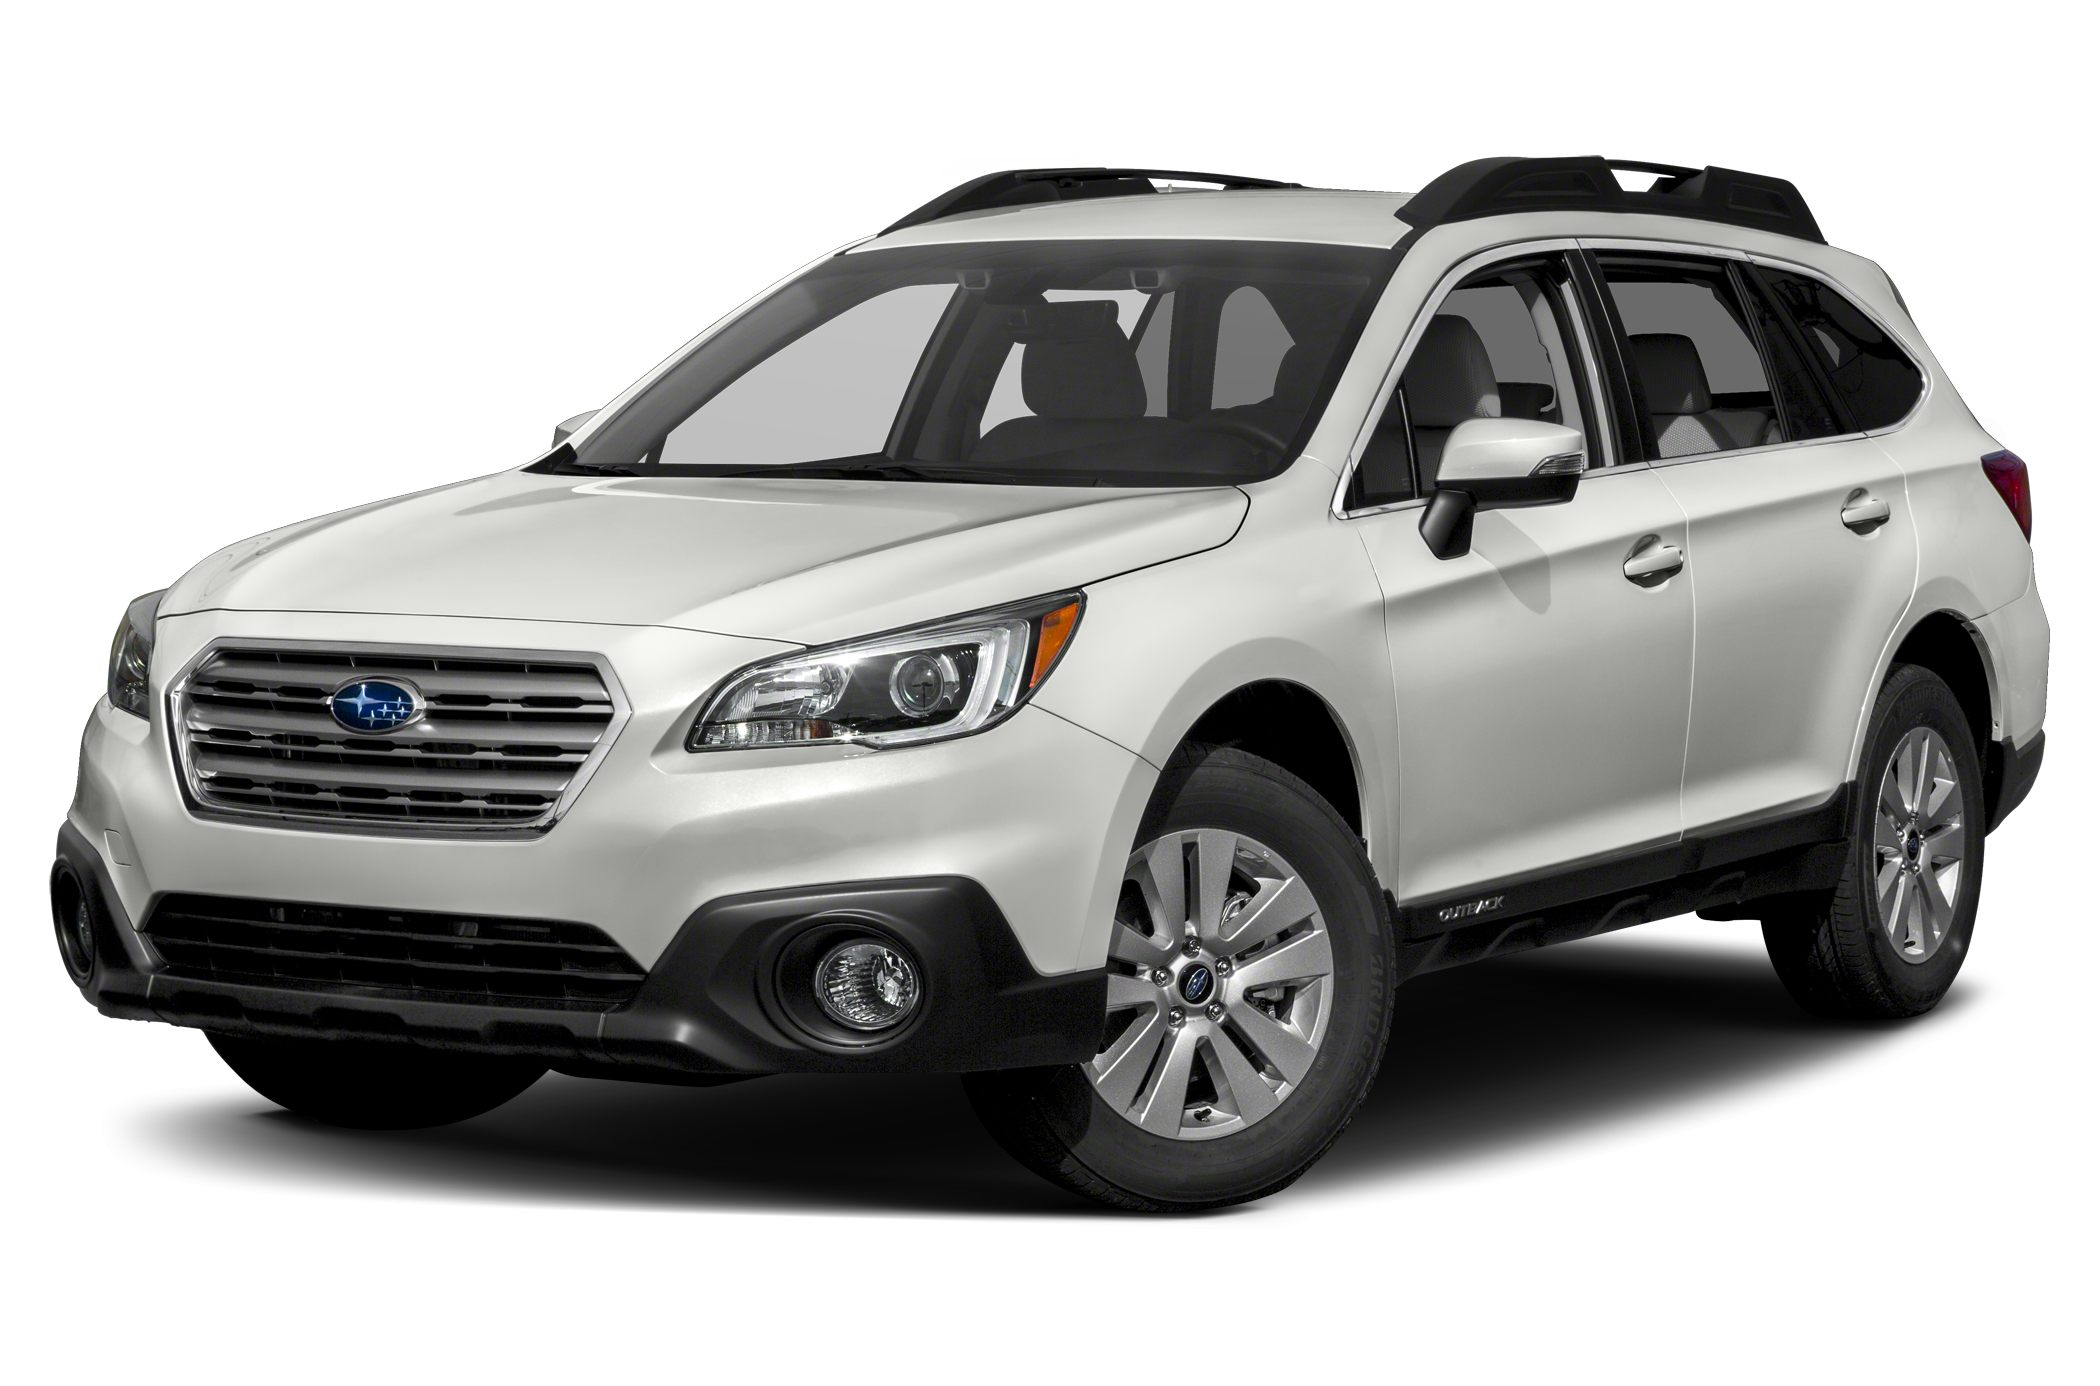 2017 Subaru Outback 2.5i Premium 4dr All-wheel Drive